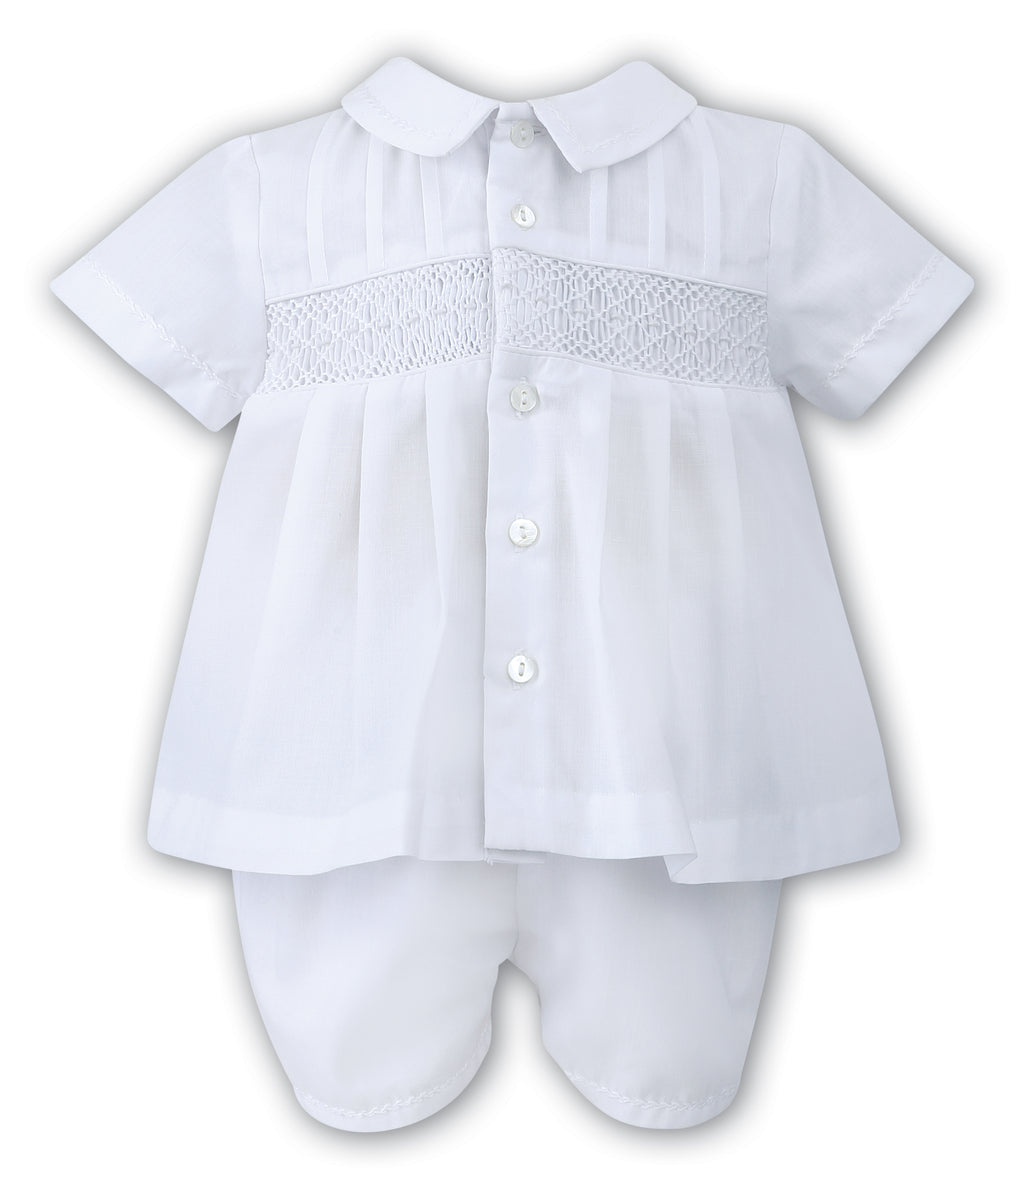 Sarah Louise Baby Boys White Two Piece Outfit Set